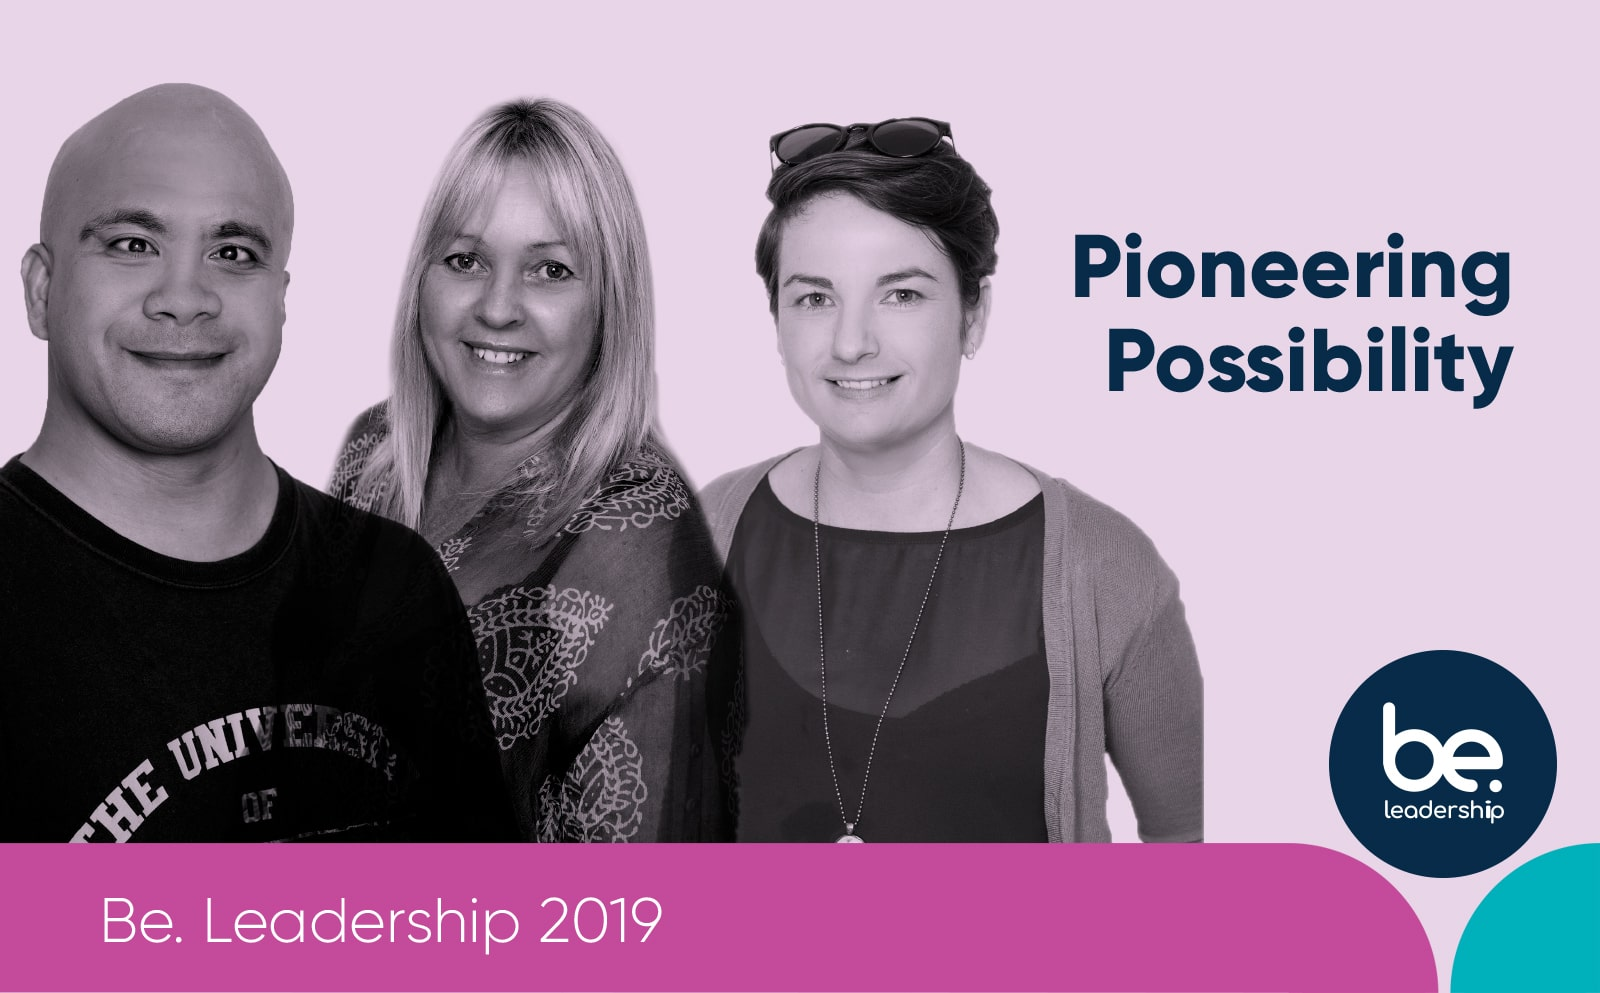 Pioneering Possibility. Be Leadership 2019 Graduates.